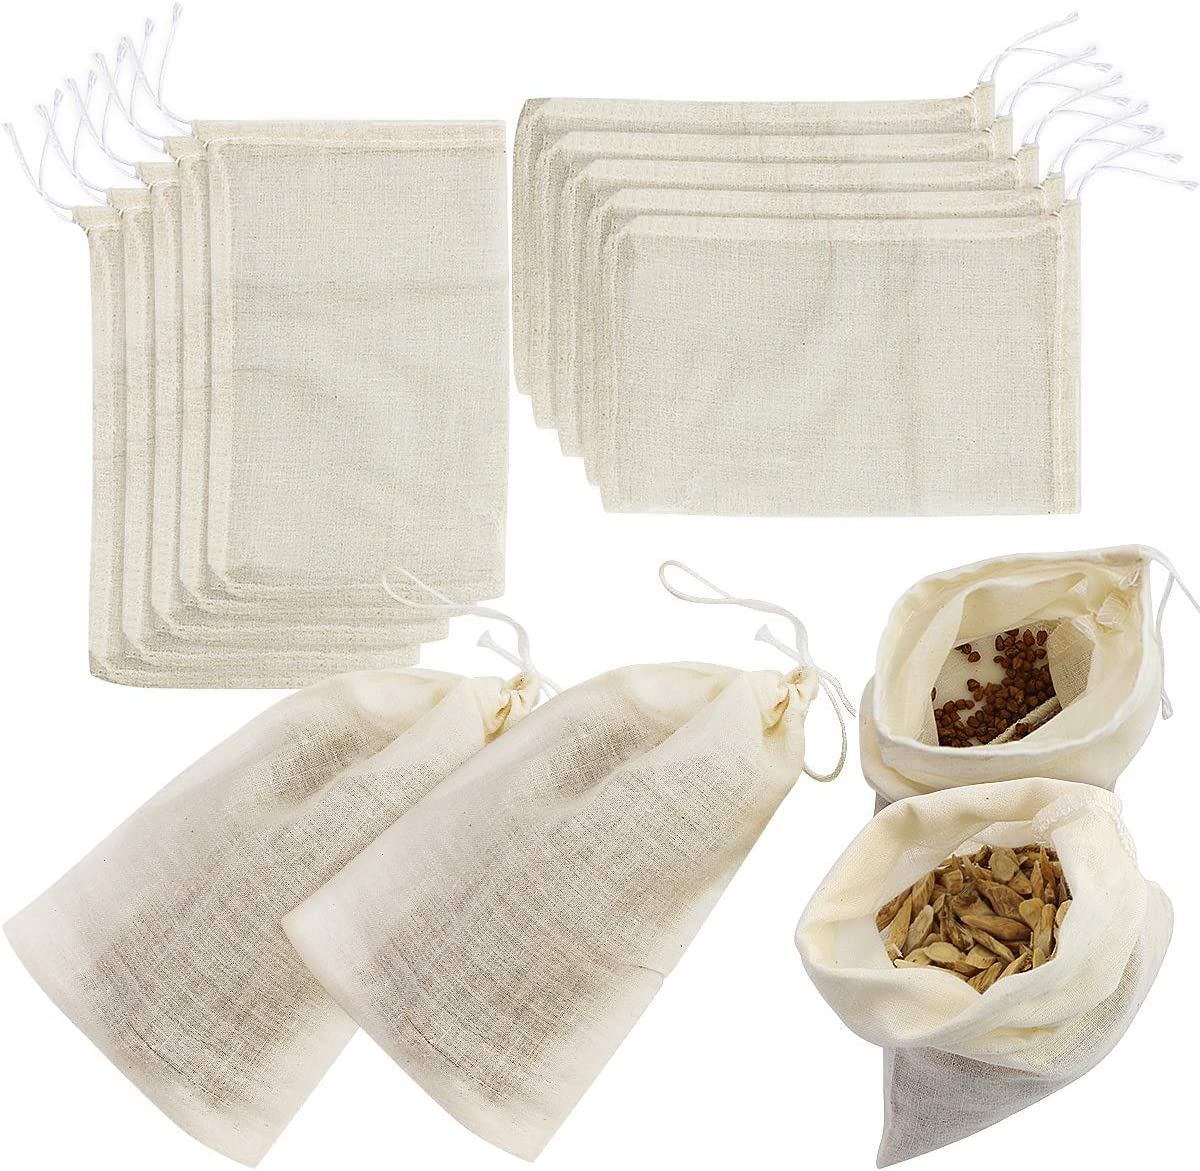 Weoxpr 24 Pieces Reusable Drawstring Soup Bags - 4 x 6 inch Straining Cheesecloth Bags, Cotton Coffee Tea Brew Bags, Soup Gravy Broth Brew Bags, Herbs Sachets, Muslin Bags for for Home Kitchen Use